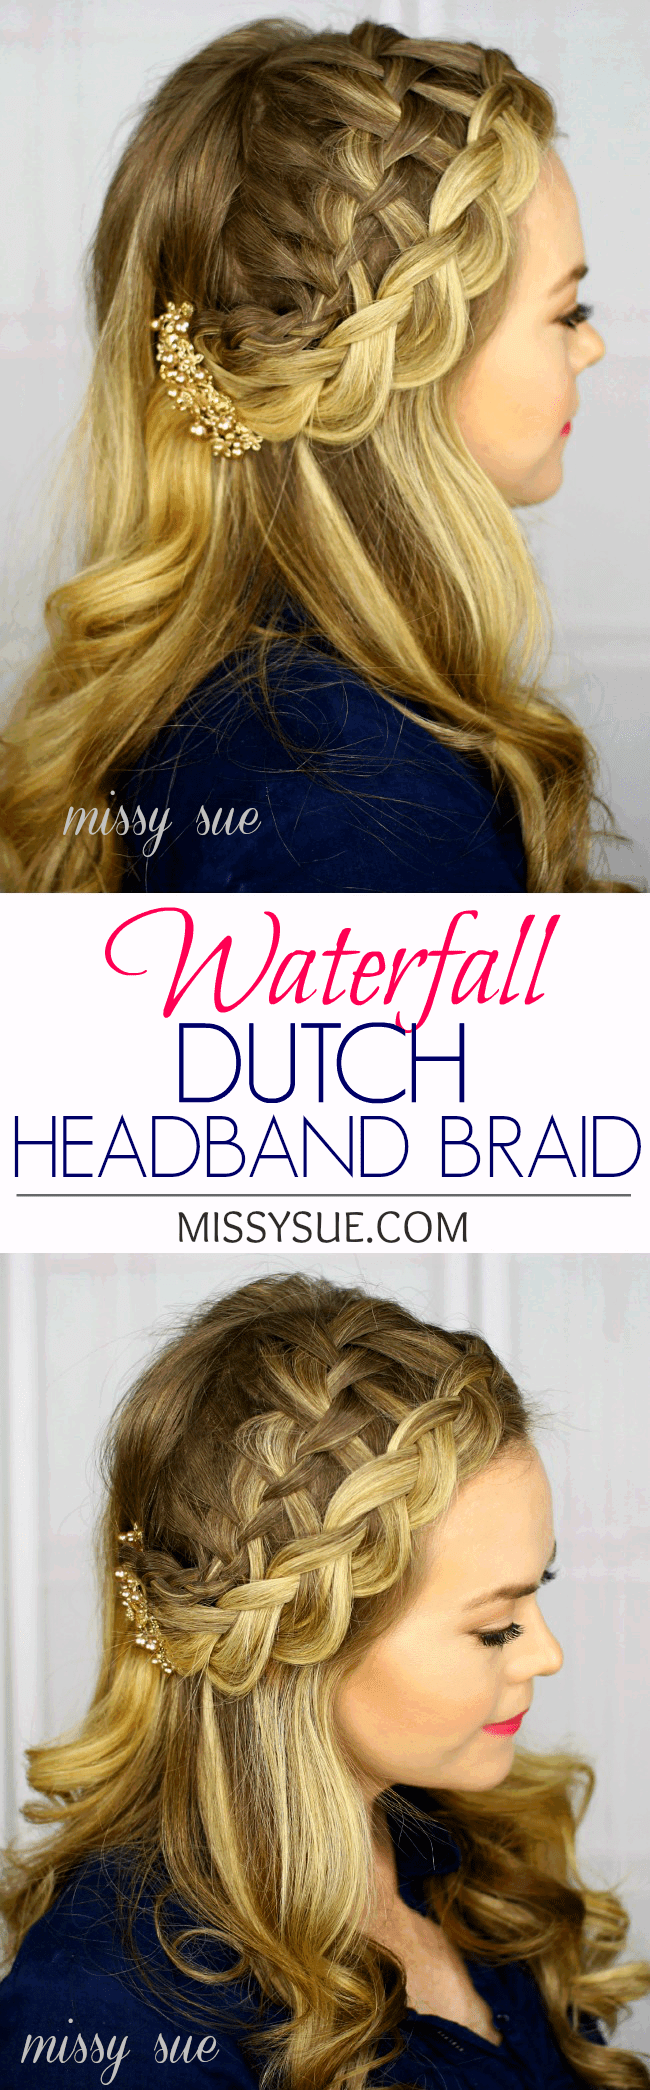 Waterfall Dutch Braid Headband